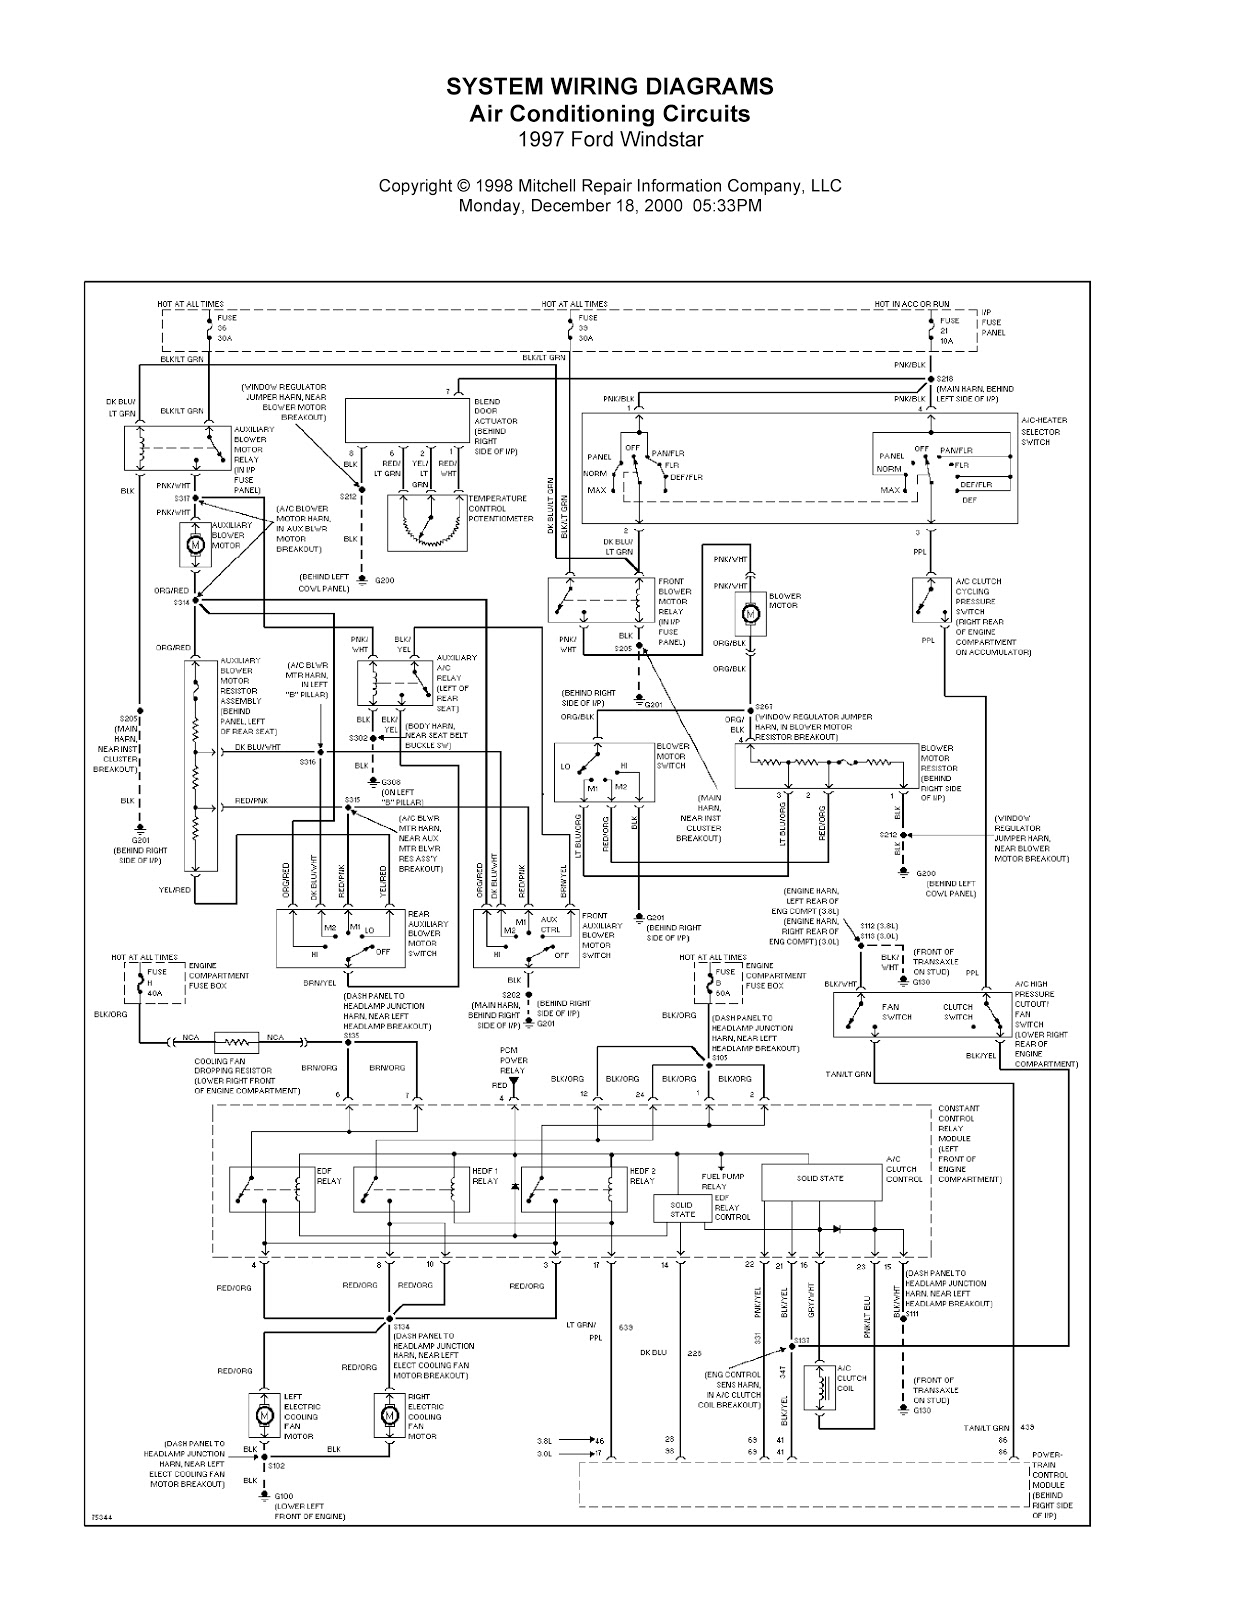 May 2011 | Wiring Diagrams Center  Pontiac Grand Am Wiring Diagram Under Hood on 1994 pontiac grand prix wiring diagram, 1992 pontiac bonneville wiring diagram, 1994 pontiac firebird wiring diagram, 2007 pontiac grand prix wiring diagram, 1995 pontiac grand prix wiring diagram, 2000 acura rl wiring diagram, 2005 pontiac grand prix wiring diagram, 2001 pontiac aztek wiring diagram, 2005 pontiac grand am wiring diagram, 1994 nissan maxima wiring diagram, 2002 audi a4 wiring diagram, 1997 pontiac grand prix wiring diagram, 1998 pontiac grand am wiring diagram, 2000 subaru forester wiring diagram, 2003 pontiac aztek wiring diagram, 2000 gmc safari wiring diagram, 2004 chevrolet tahoe wiring diagram, pontiac grand am radio wiring diagram, 1996 pontiac grand am wiring diagram, 2000 toyota sienna wiring diagram,